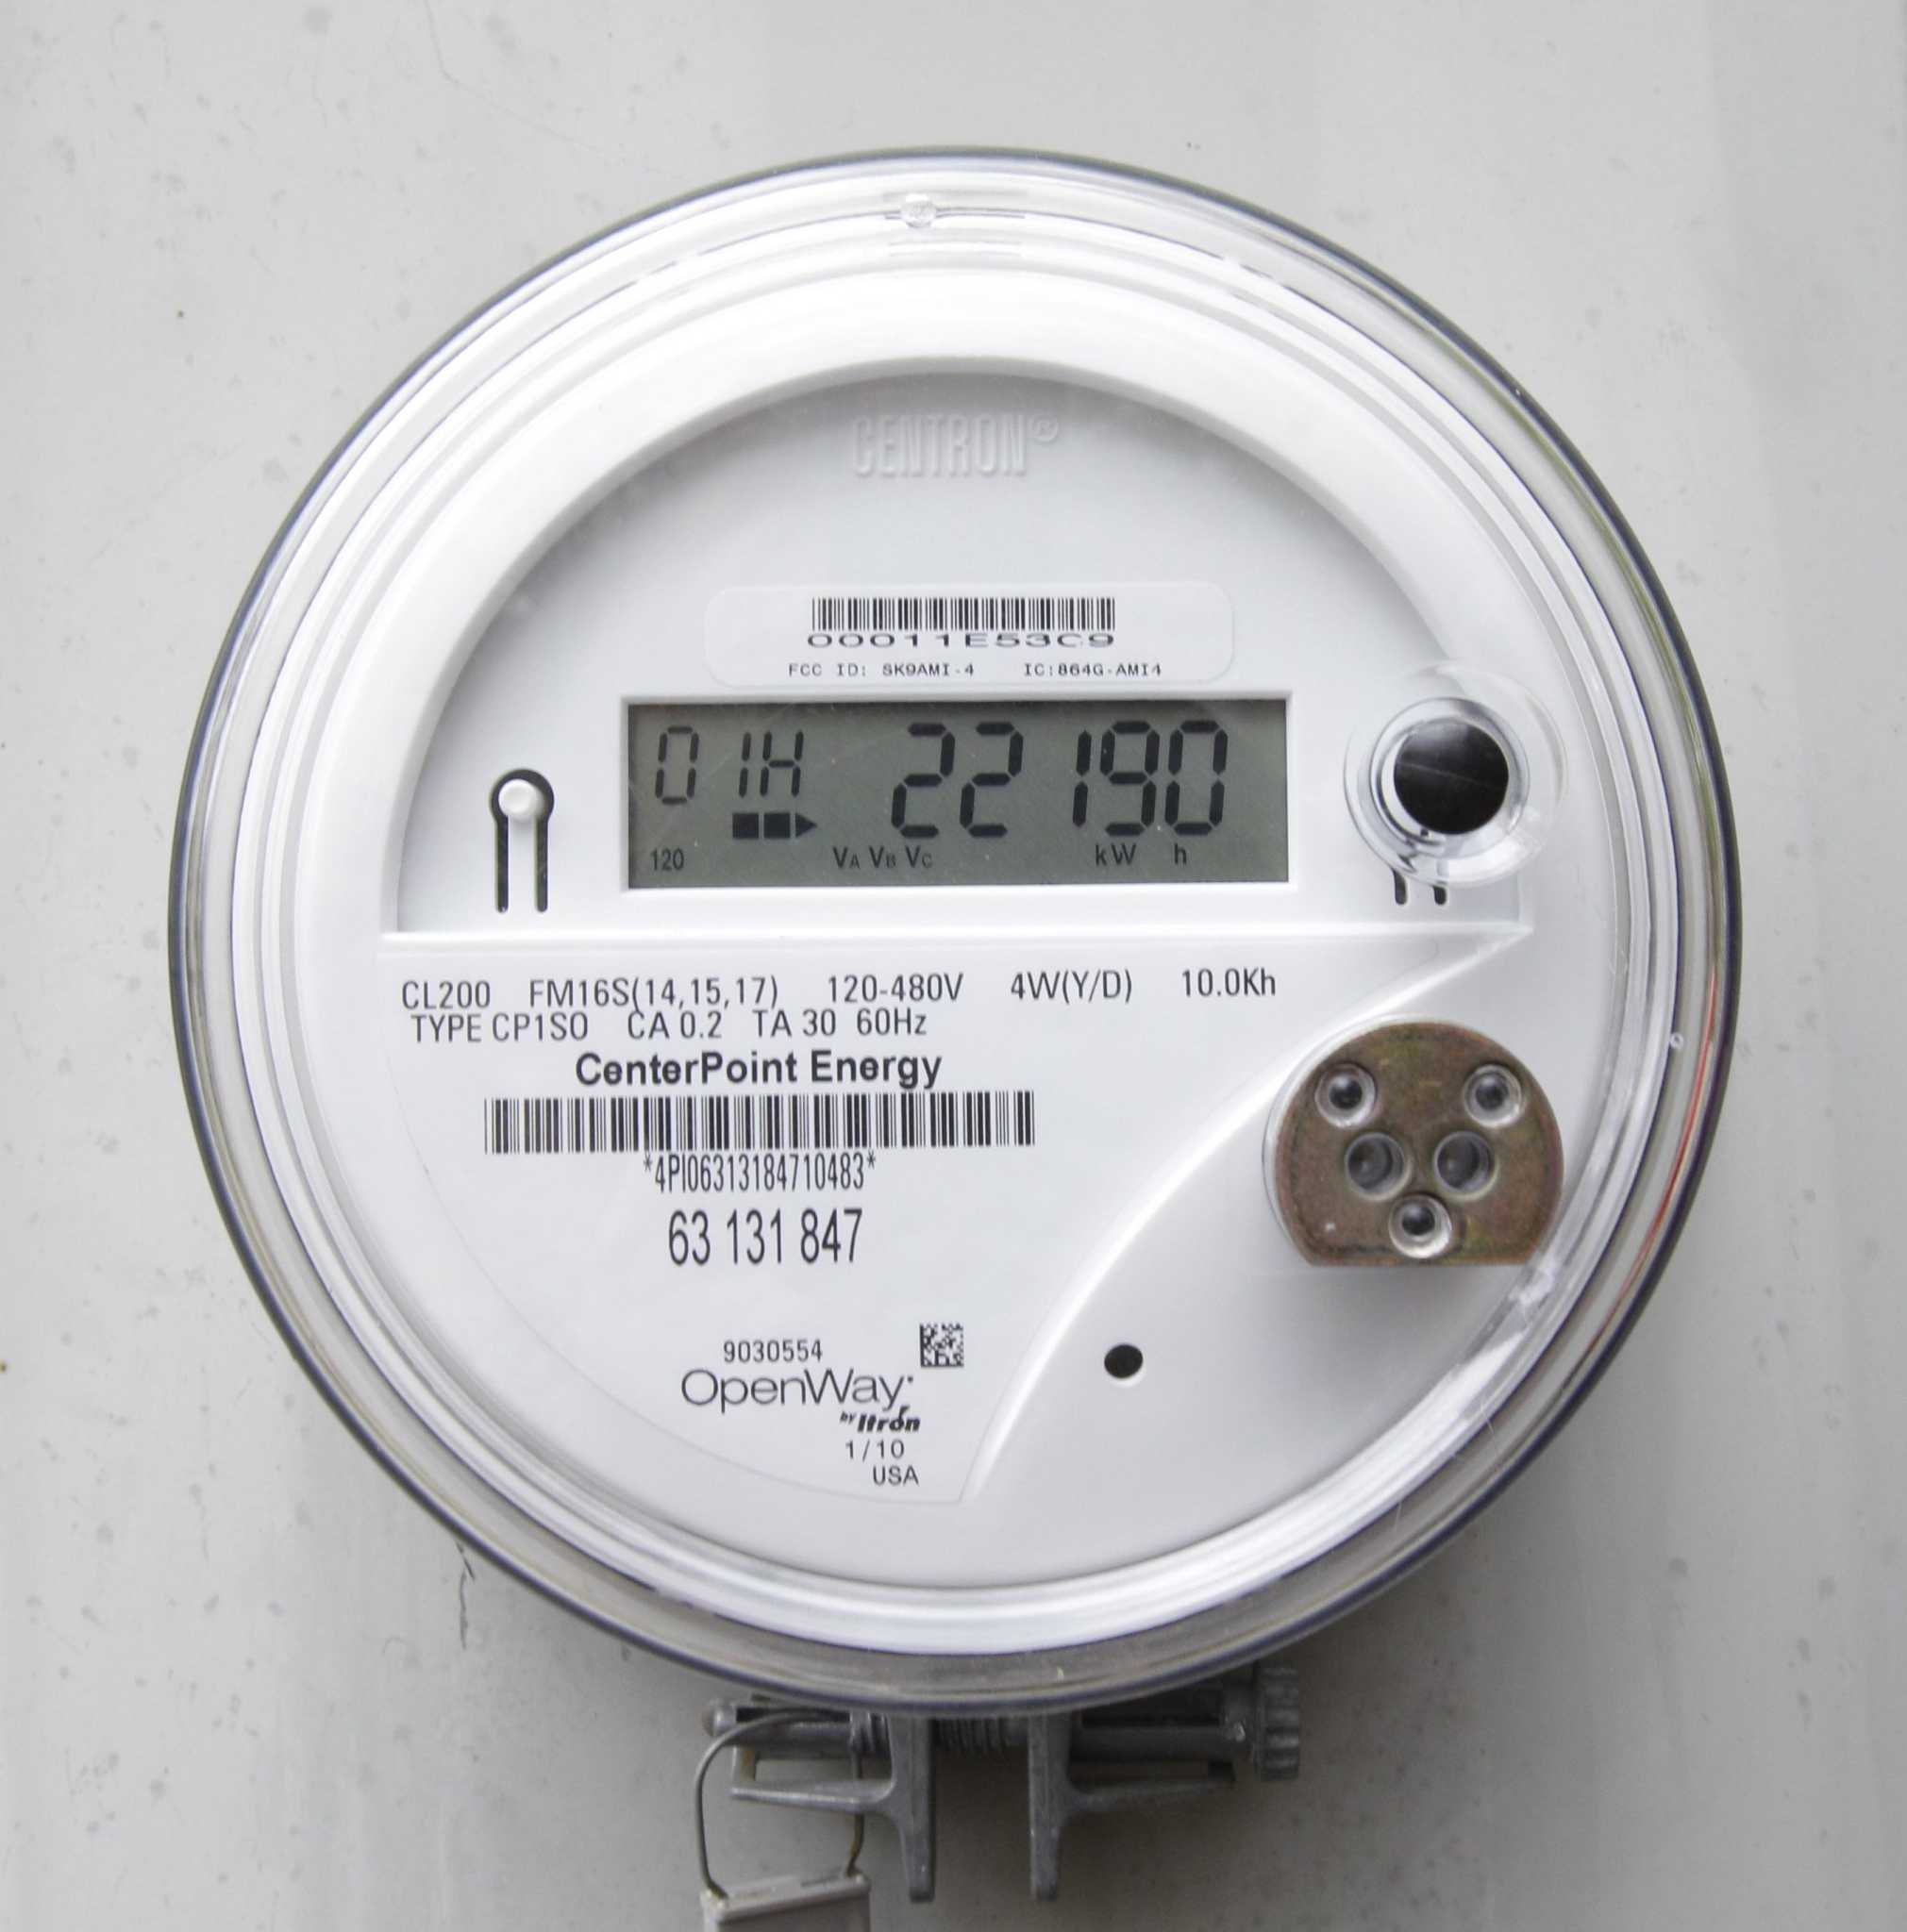 Center Point Number >> Utilities Back Out Of Deal To Create Smart Home Electricity Networks